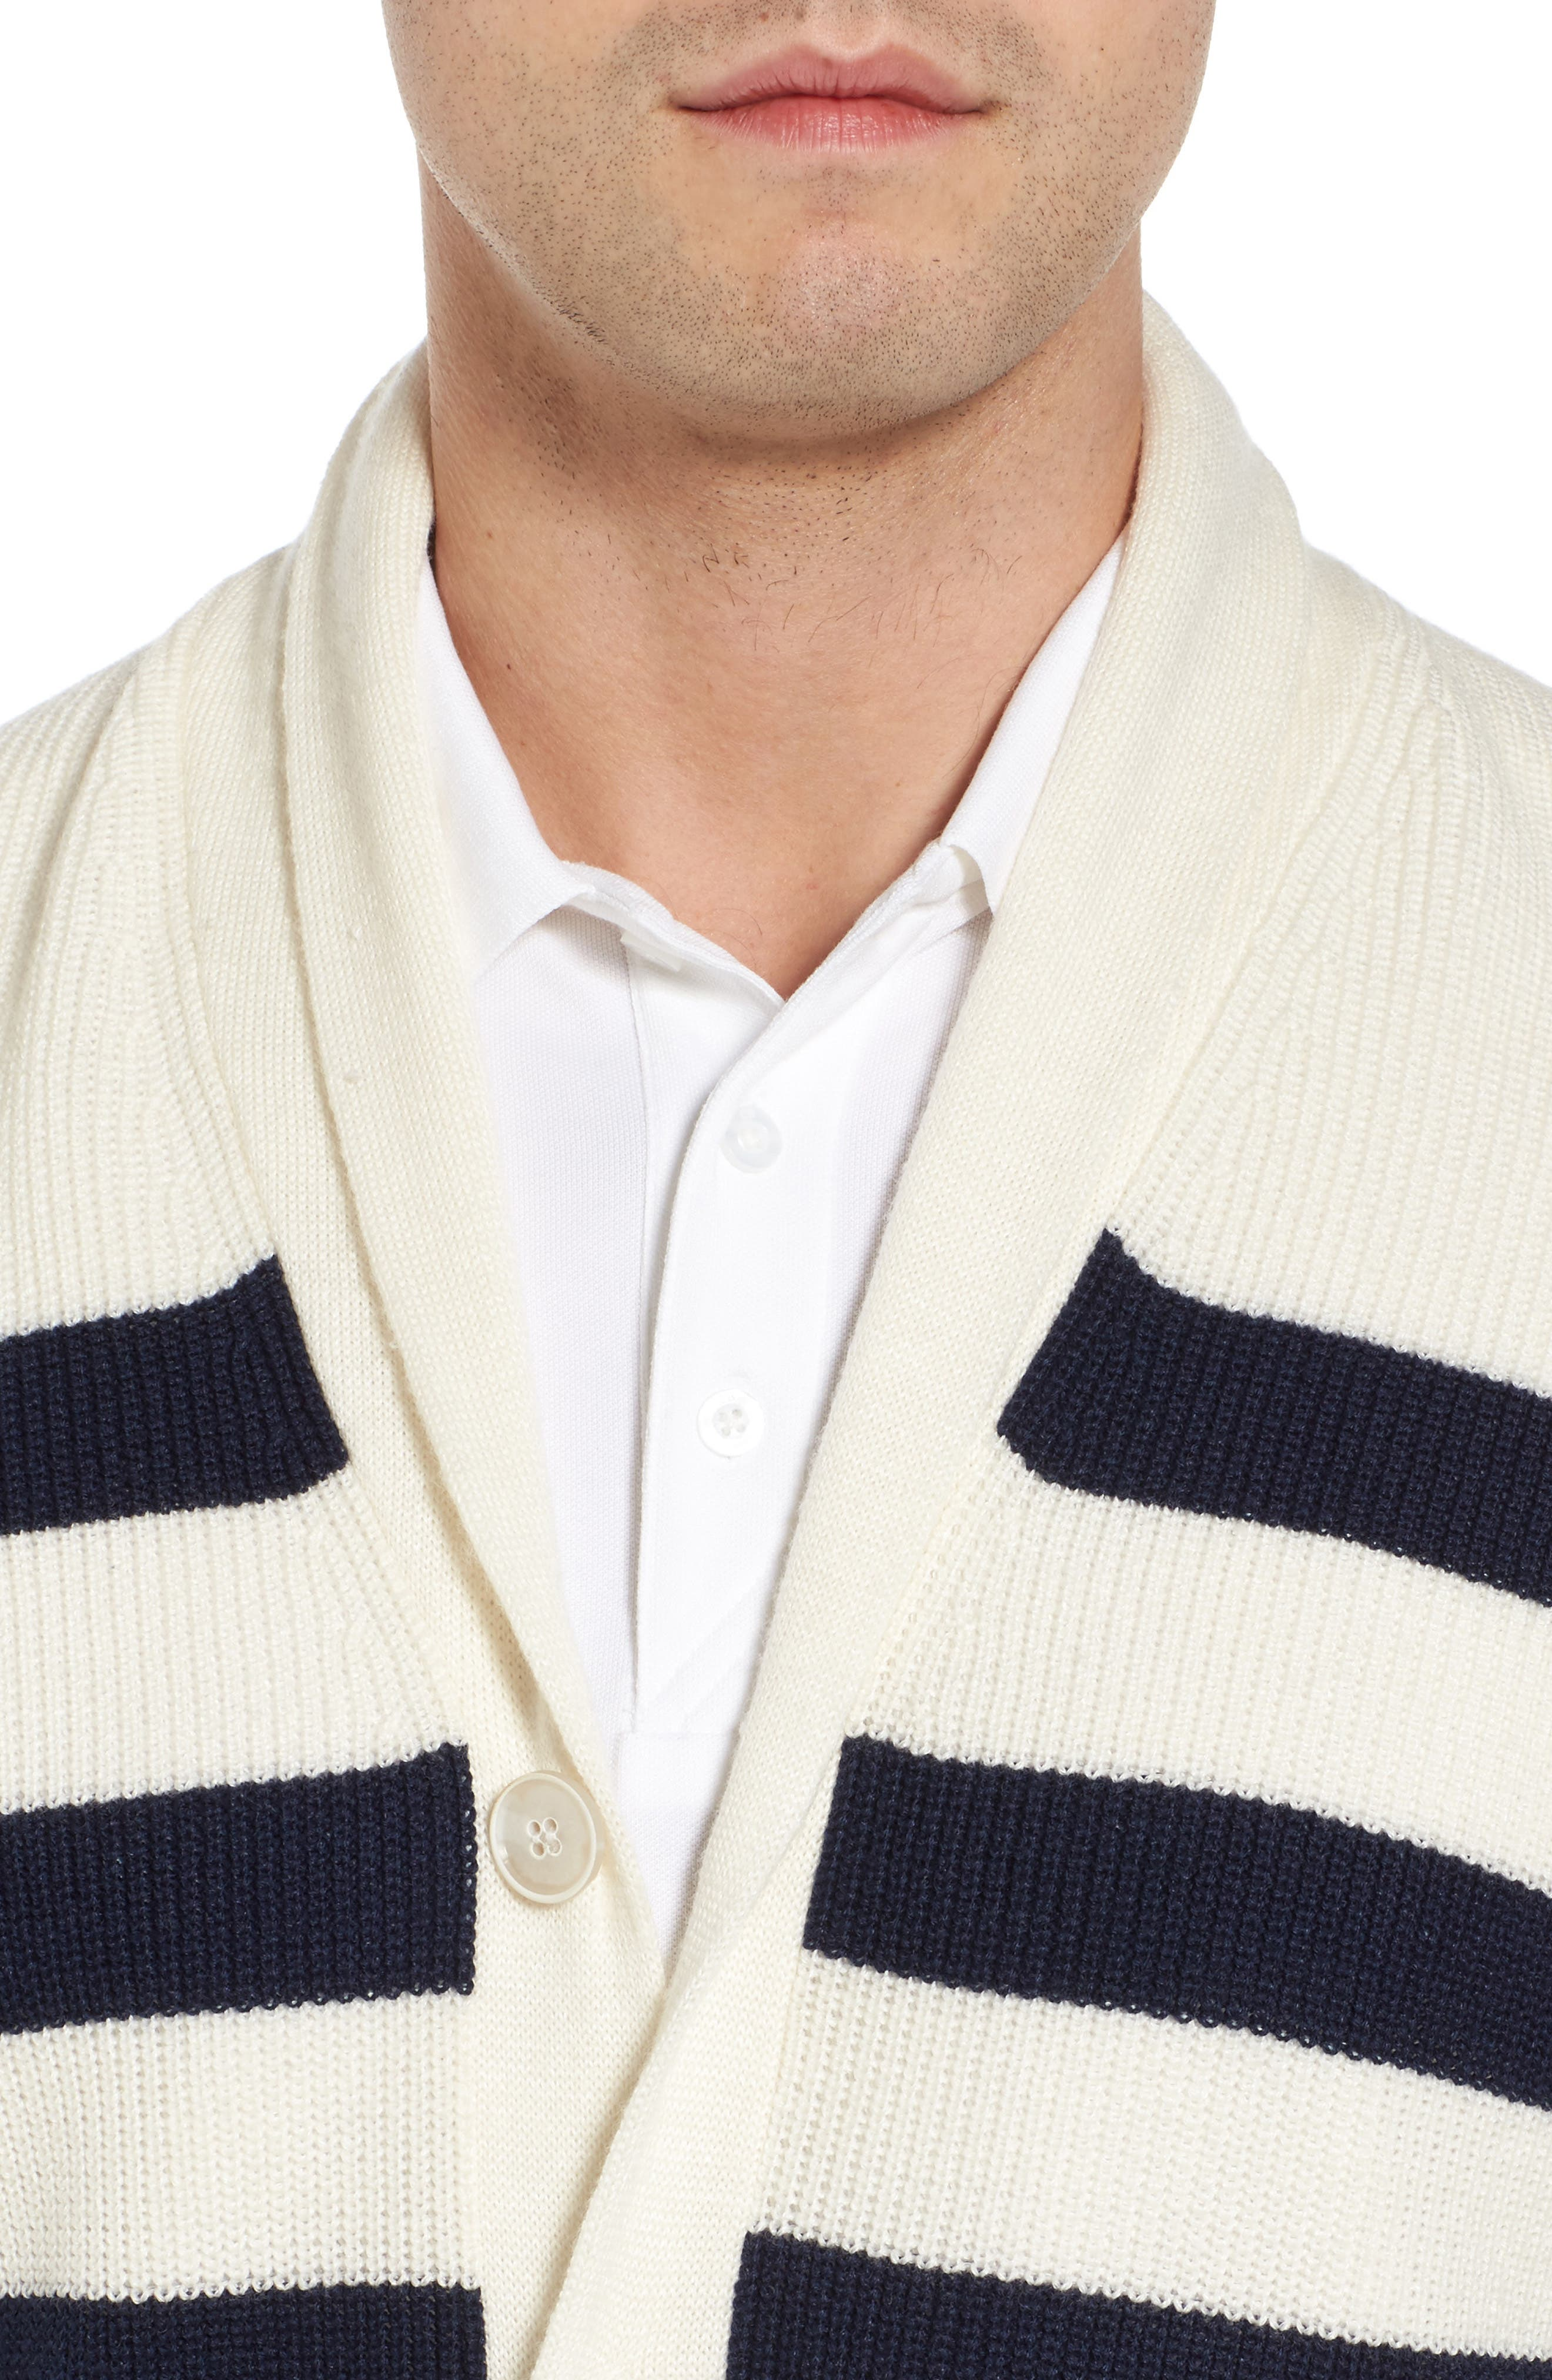 Crown Cool Sailor Stripe Merino Wool & Linen Cardigan,                             Alternate thumbnail 4, color,                             400